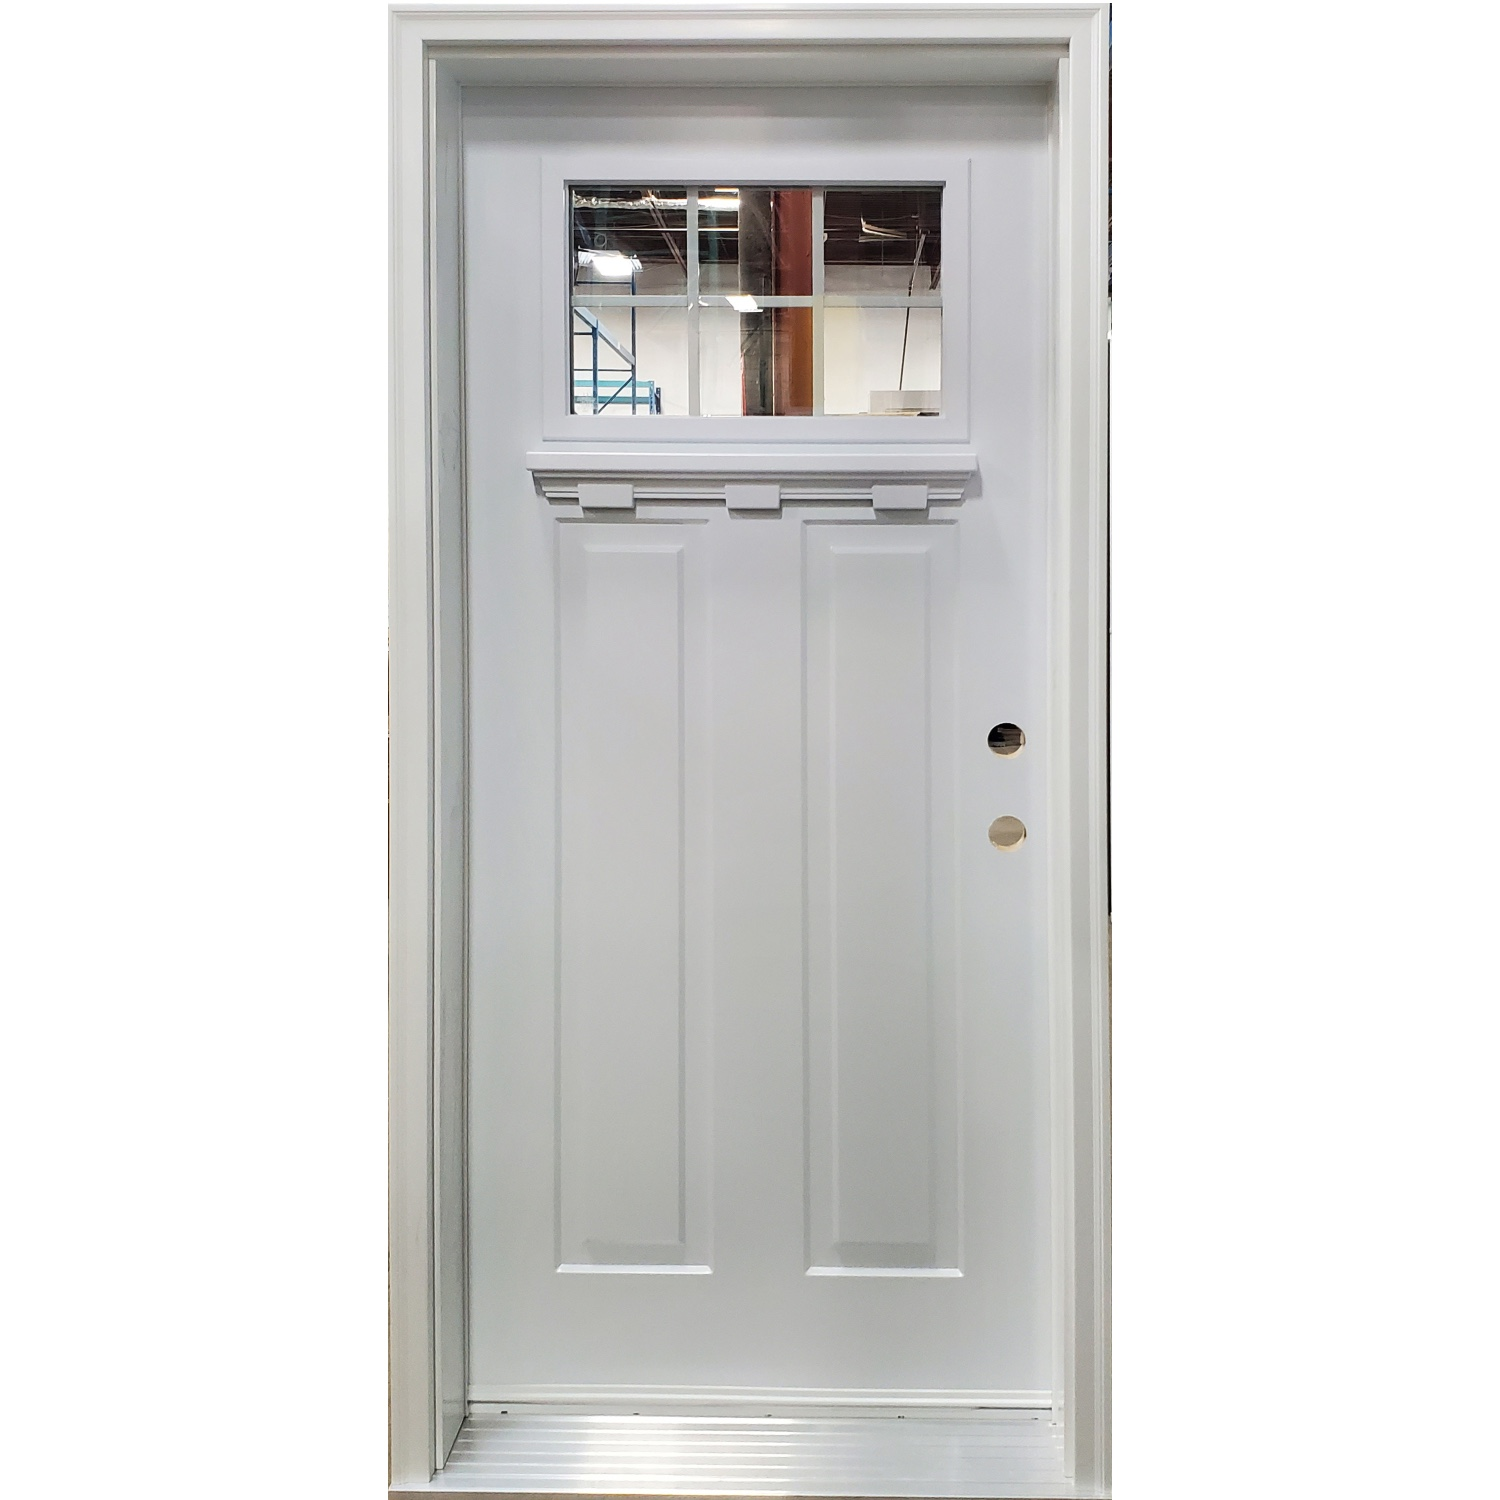 White Victoria door with Dentil Shelf and Grills